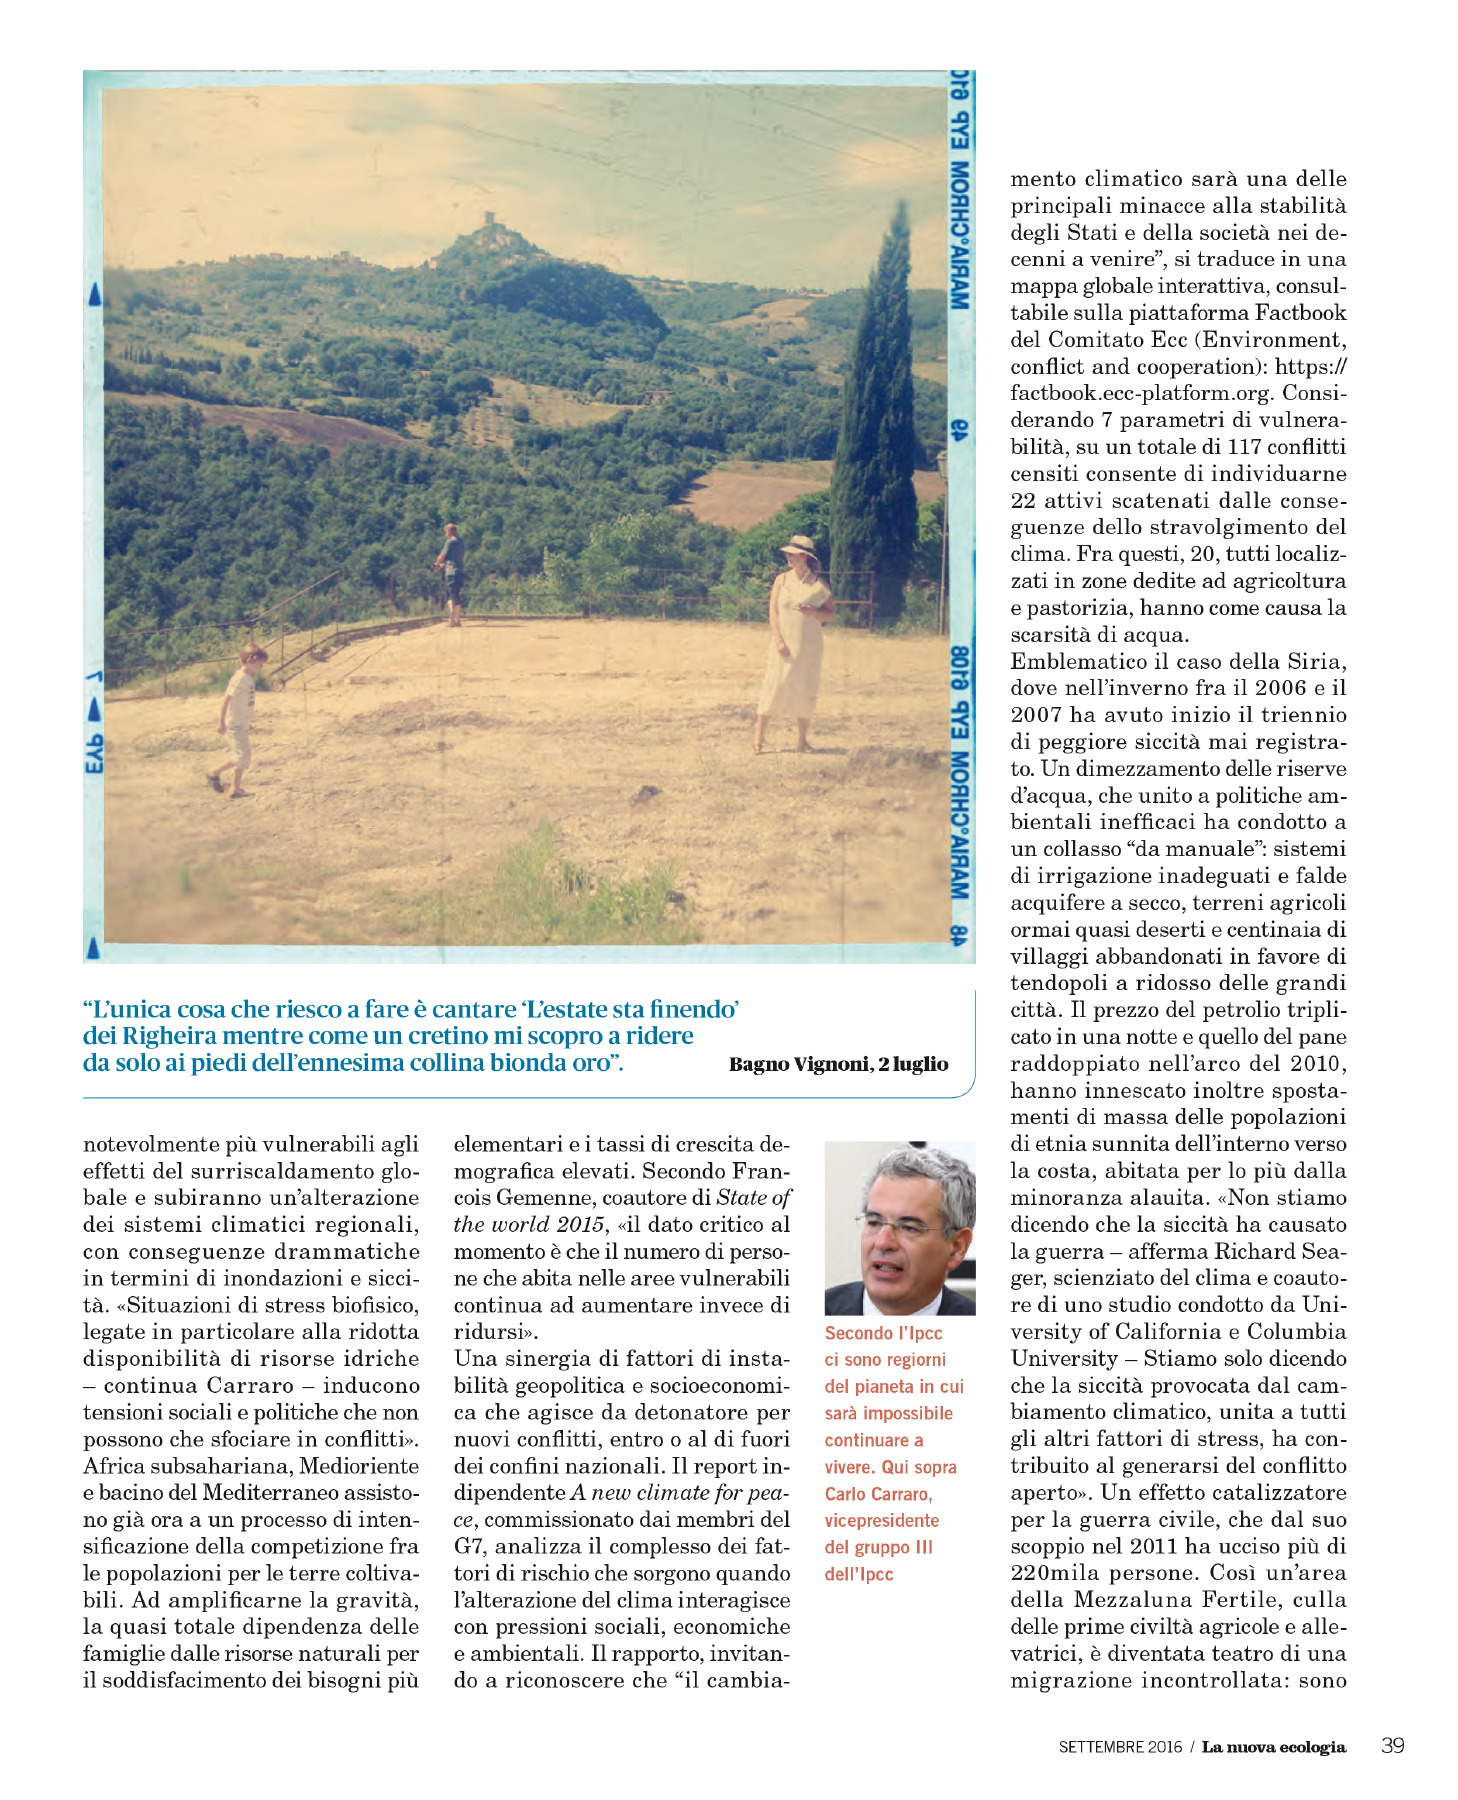 around-the-walk-_-pietro-vertamy-_tearsheet-nuova-ecologia-03